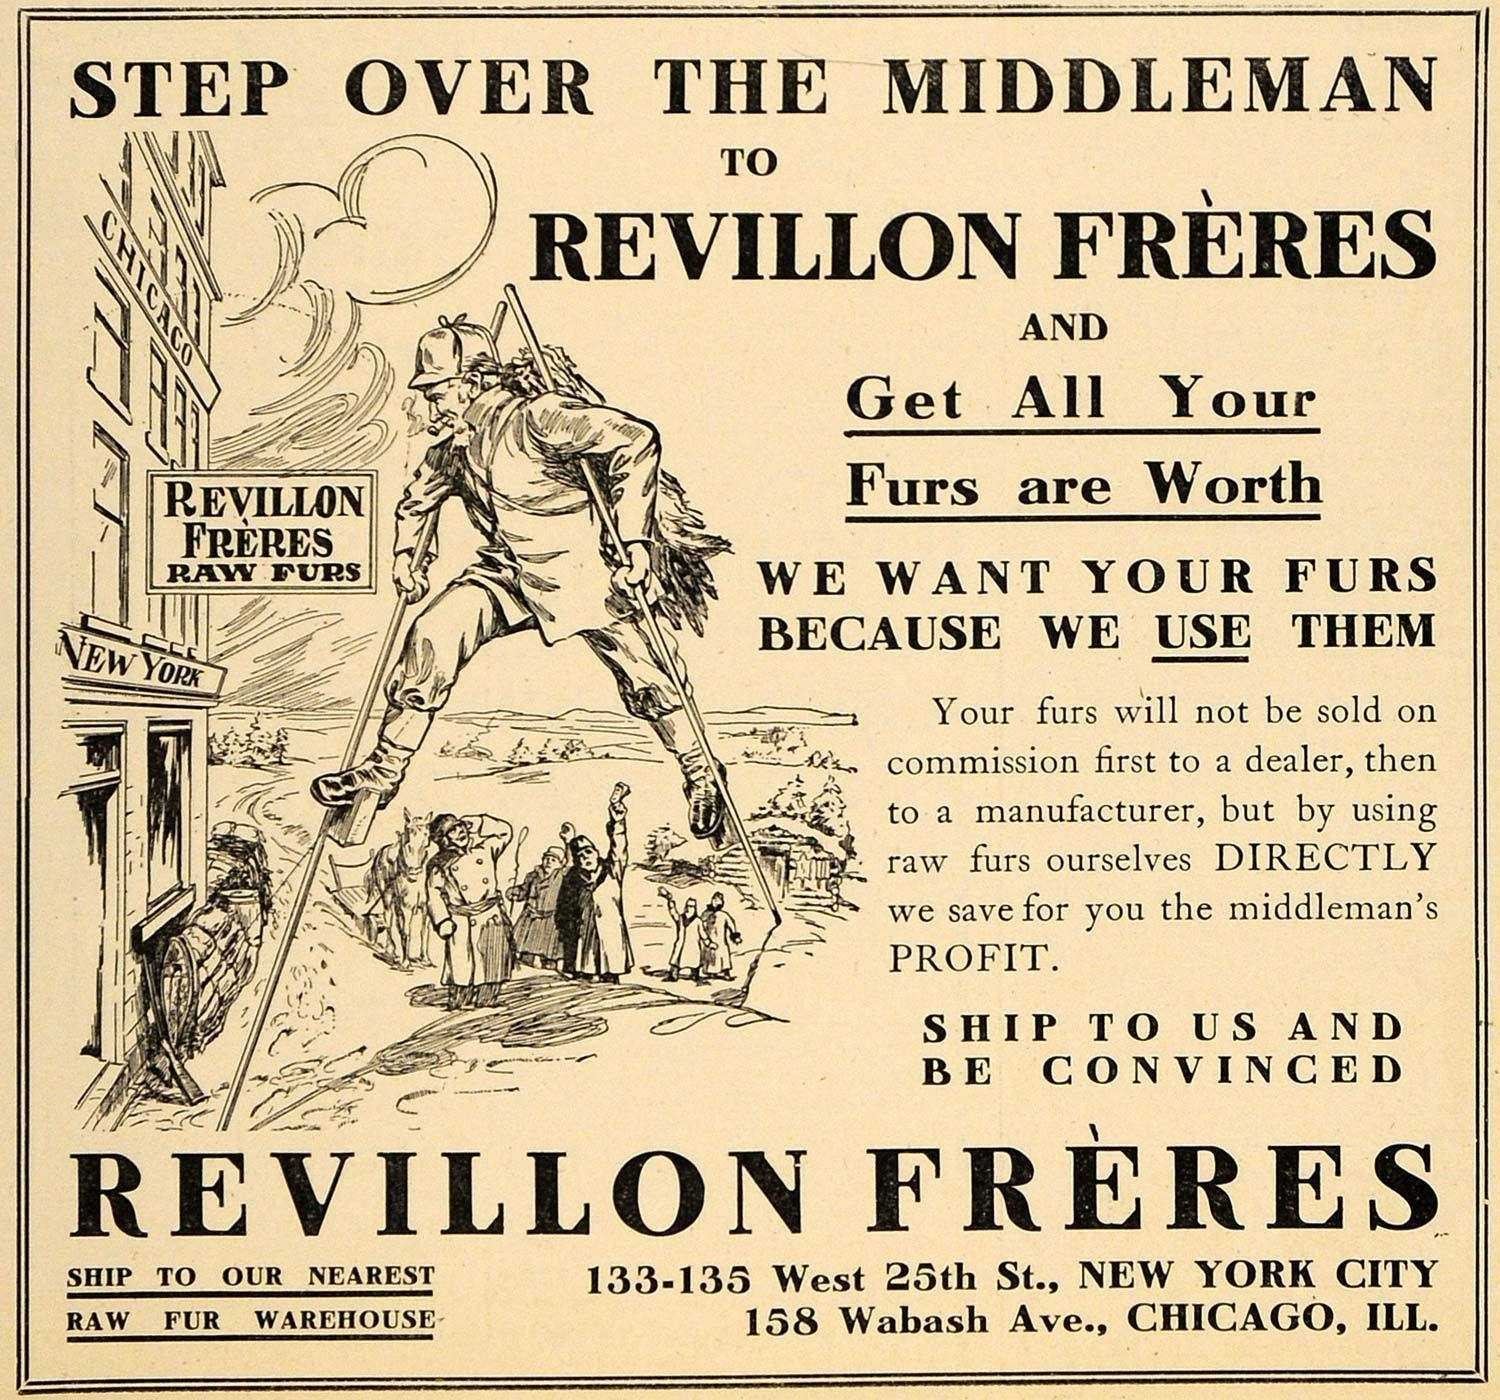 Revillon Freres ad in US newspaper